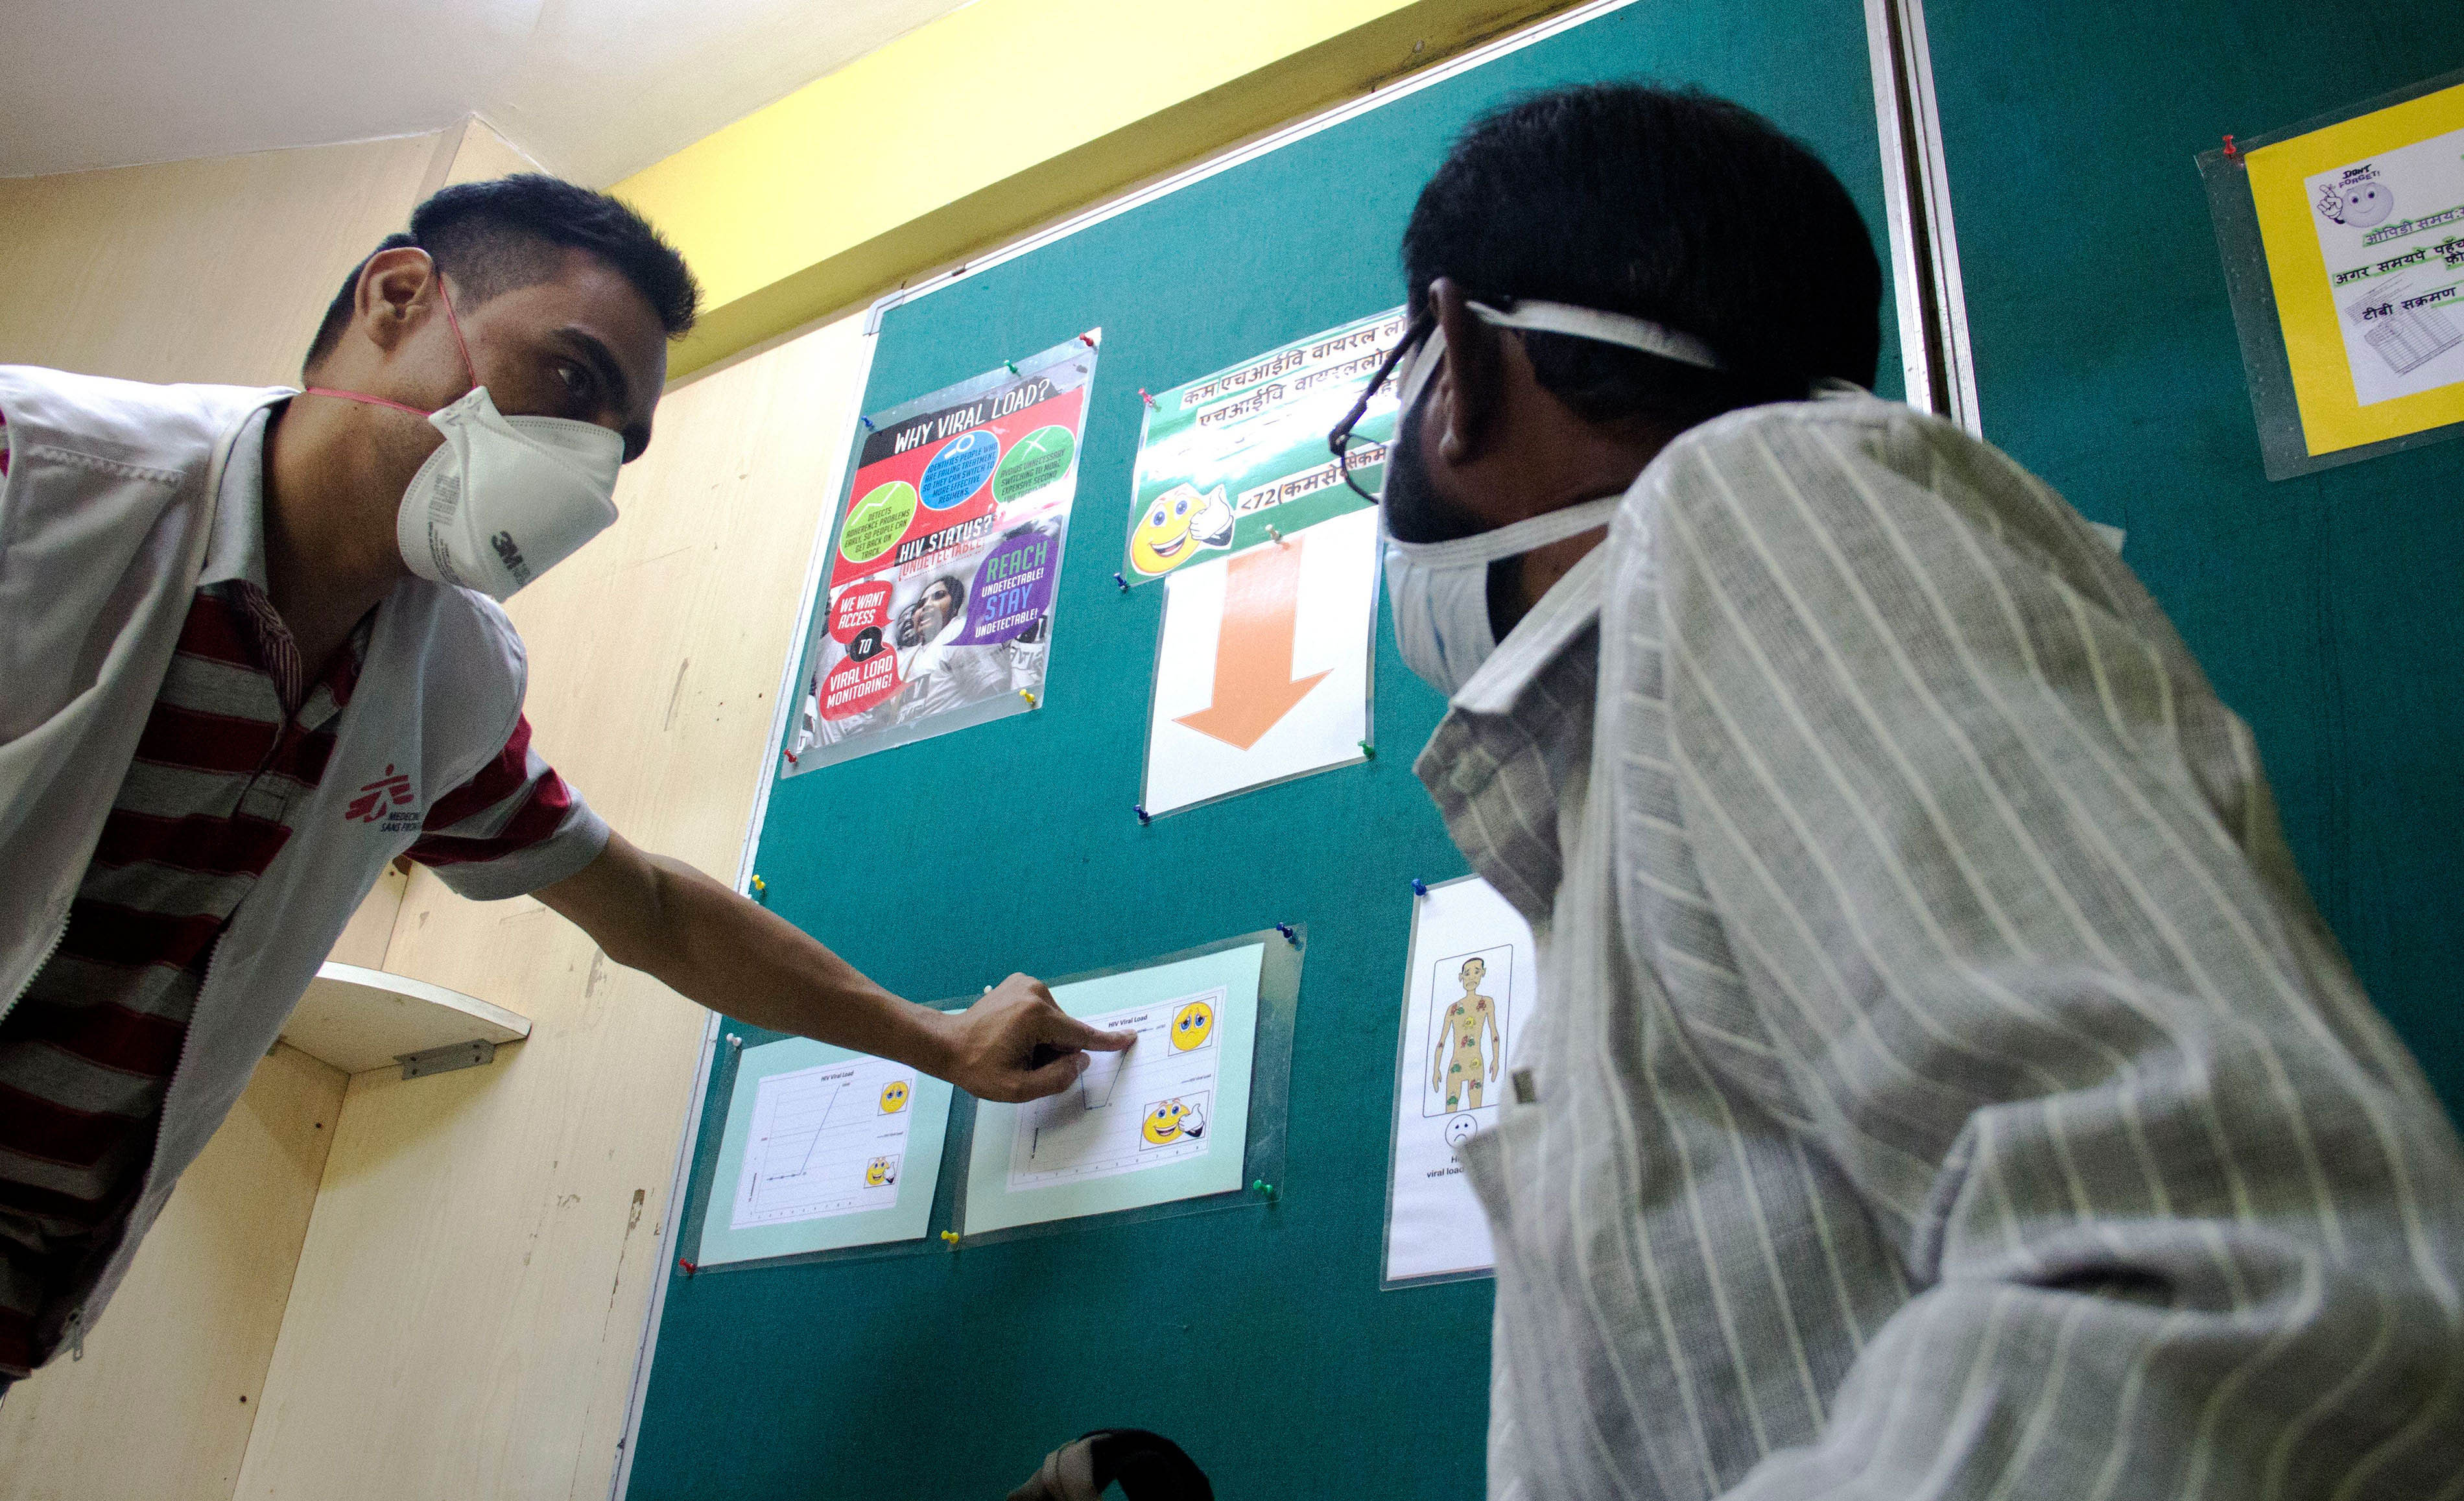 A Peer Educator in MSF Mumbai clinic conducting an educational session for a patient living with HIV, on 3rd line ART